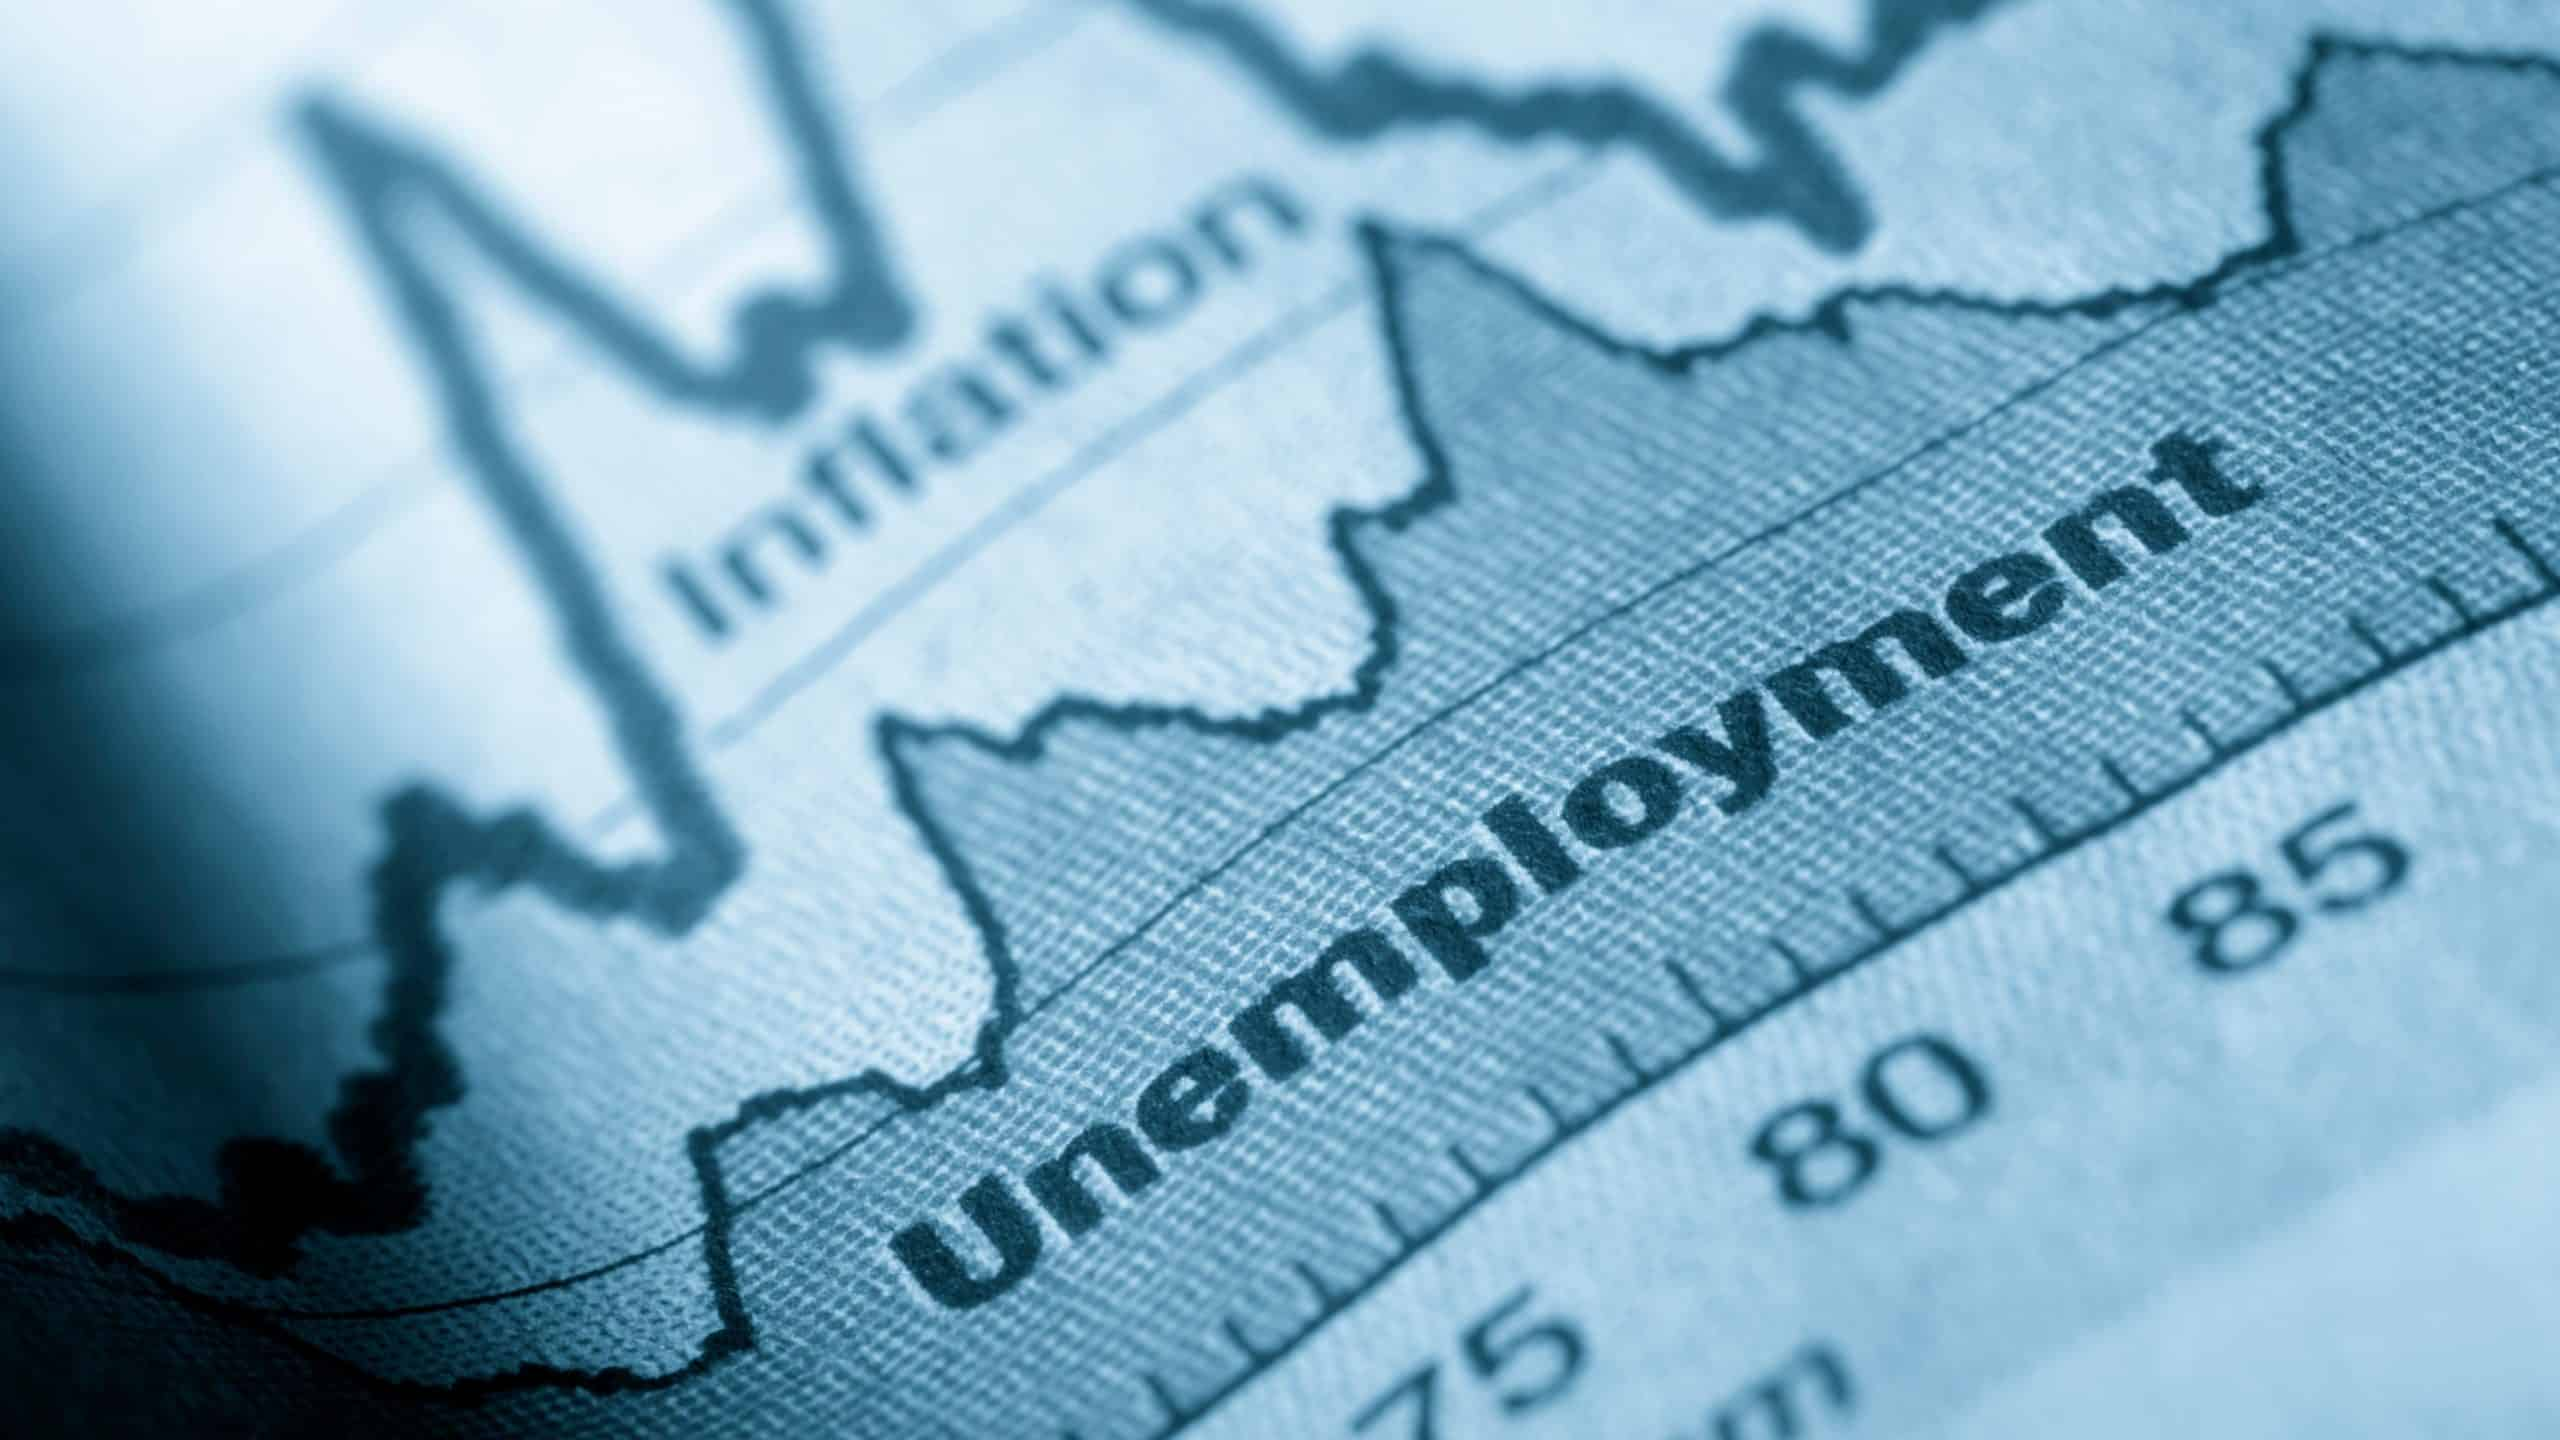 Unemployment due to Covid 19